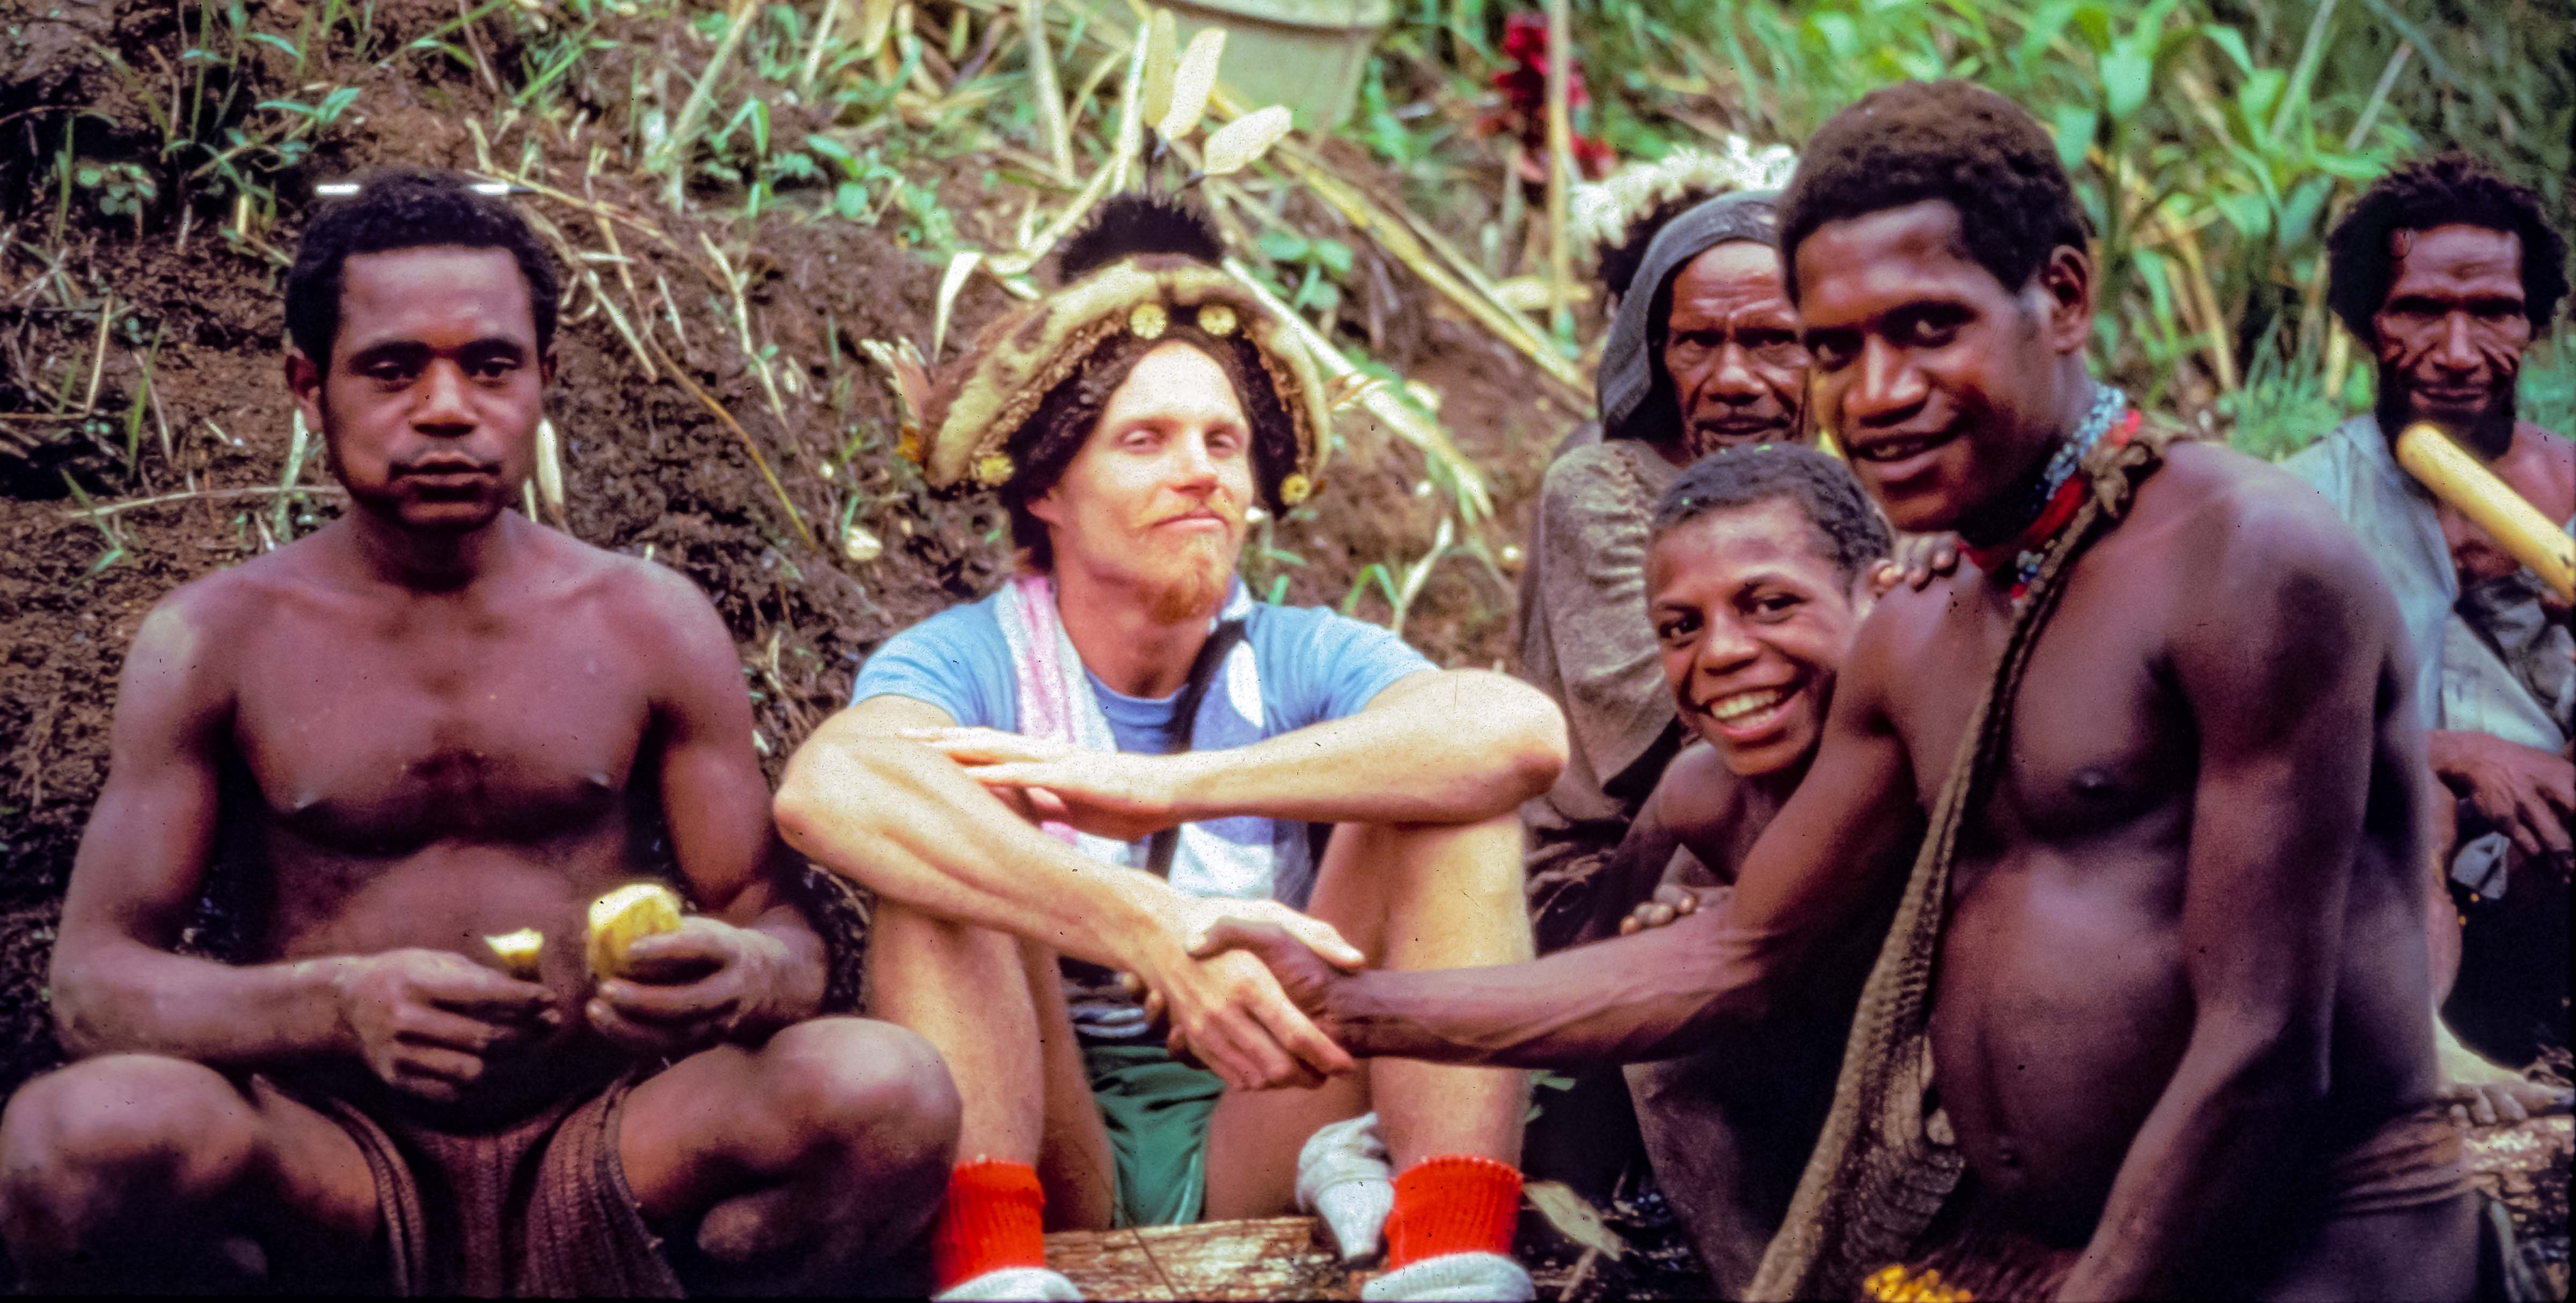 Papua New Guinea, Jeff Shea With Wig, 1983